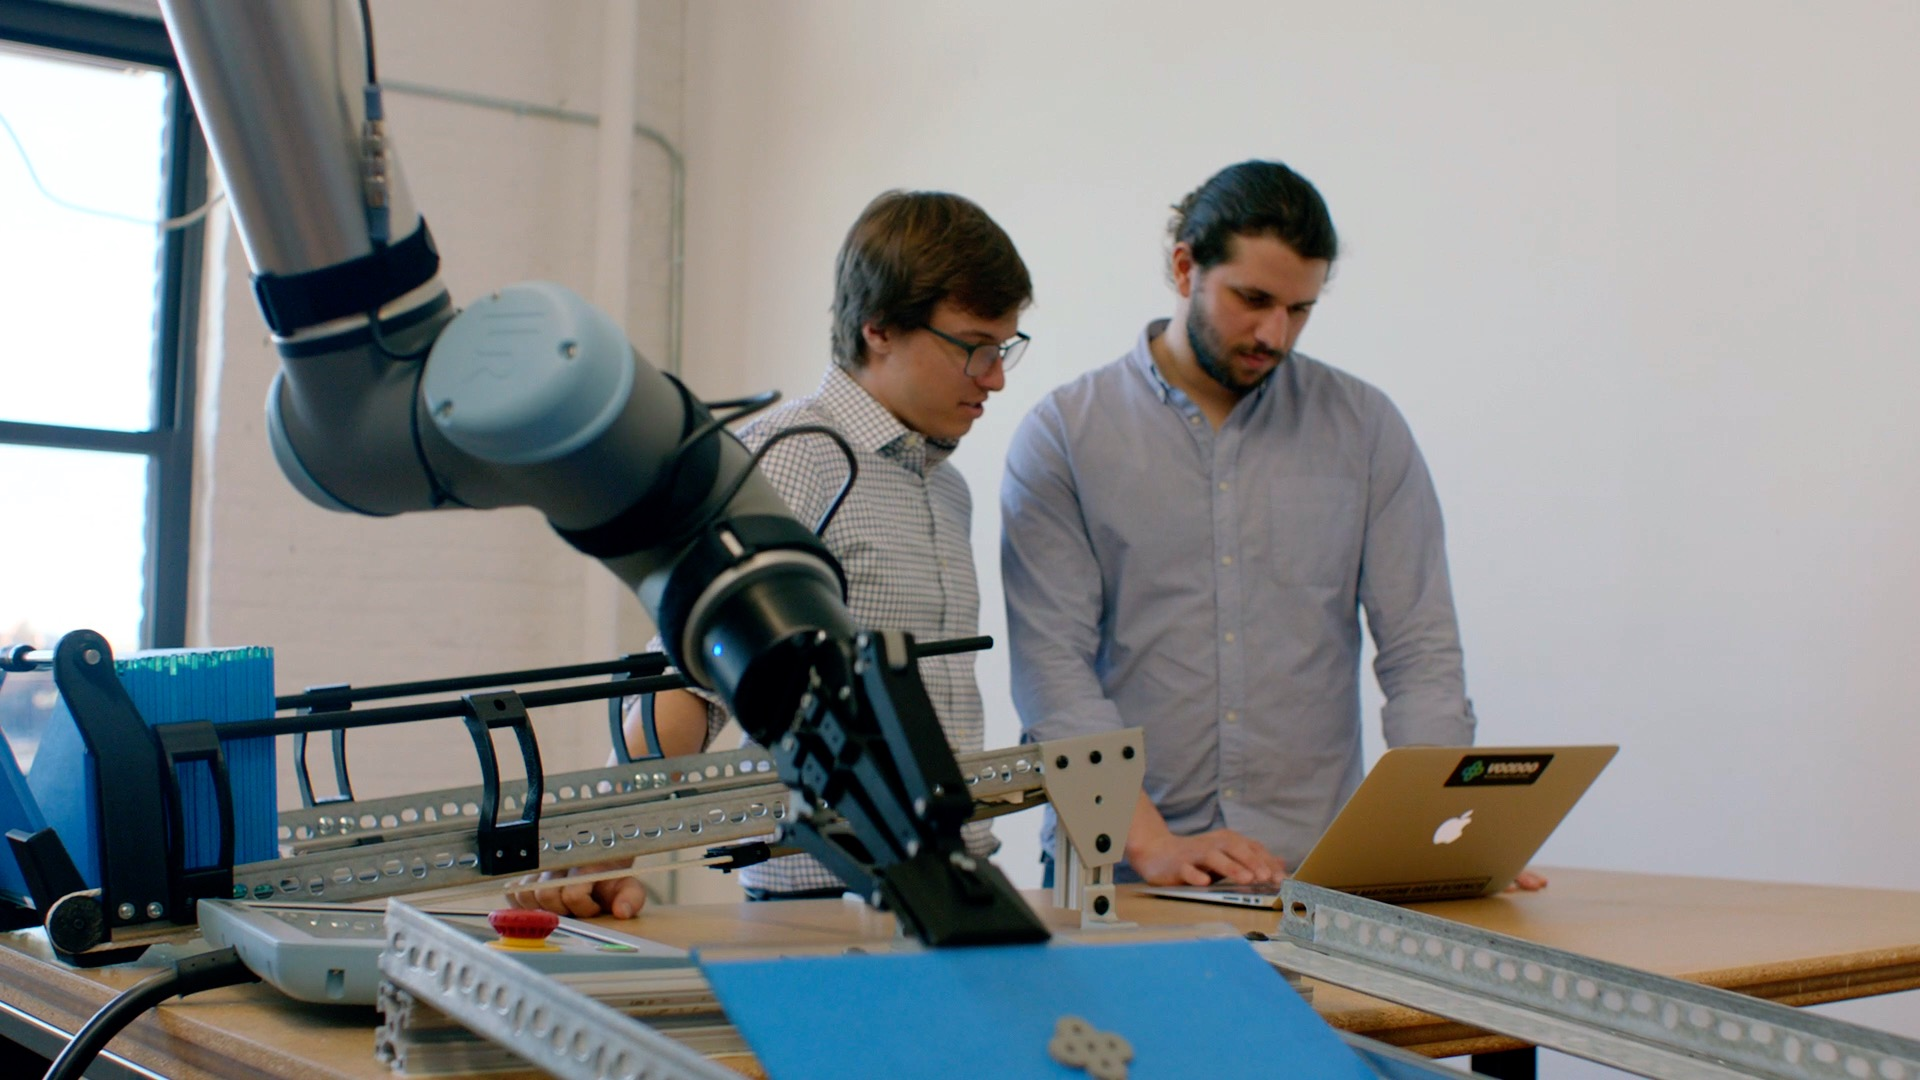 7 Reasons Why Robotics Should be Taught in Schools